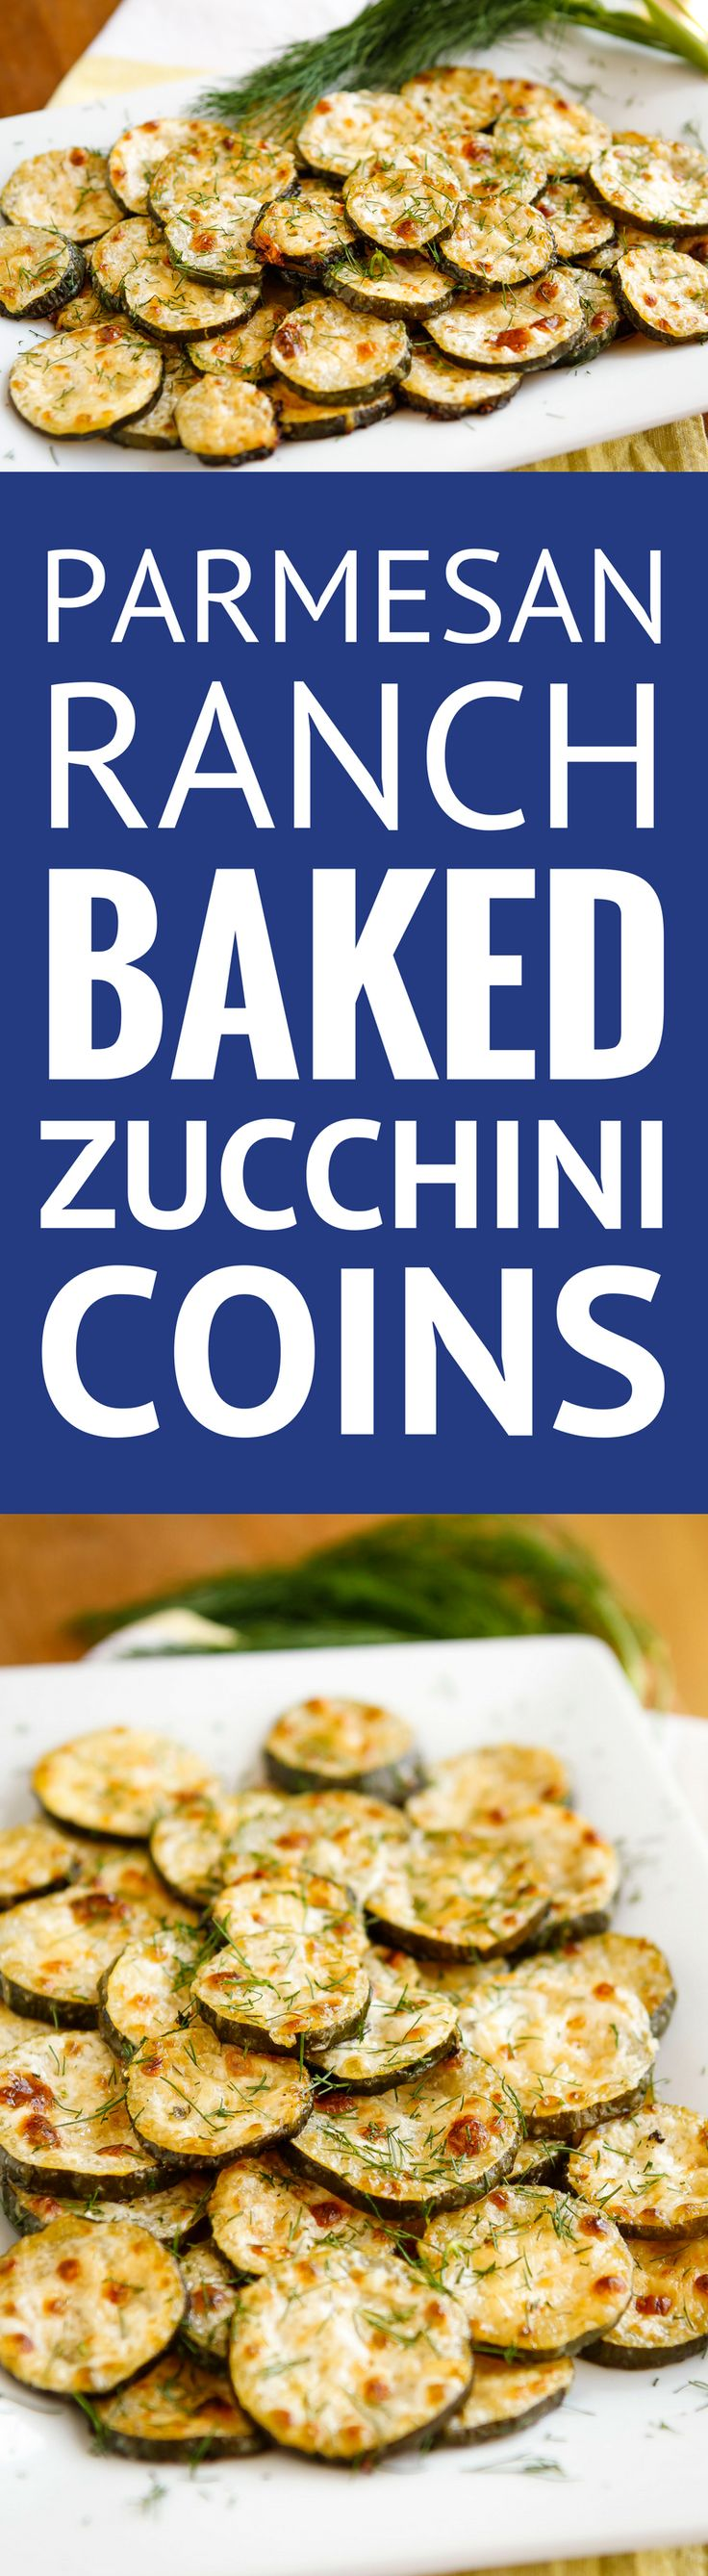 Parmesan-Ranch Baked Zucchini Coins -- need a good zucchini recipe to use up your bounty? This baked zucchini recipe, with its parmesan and ranch flavors, is absolutely fabulous! | baked zucchini parm